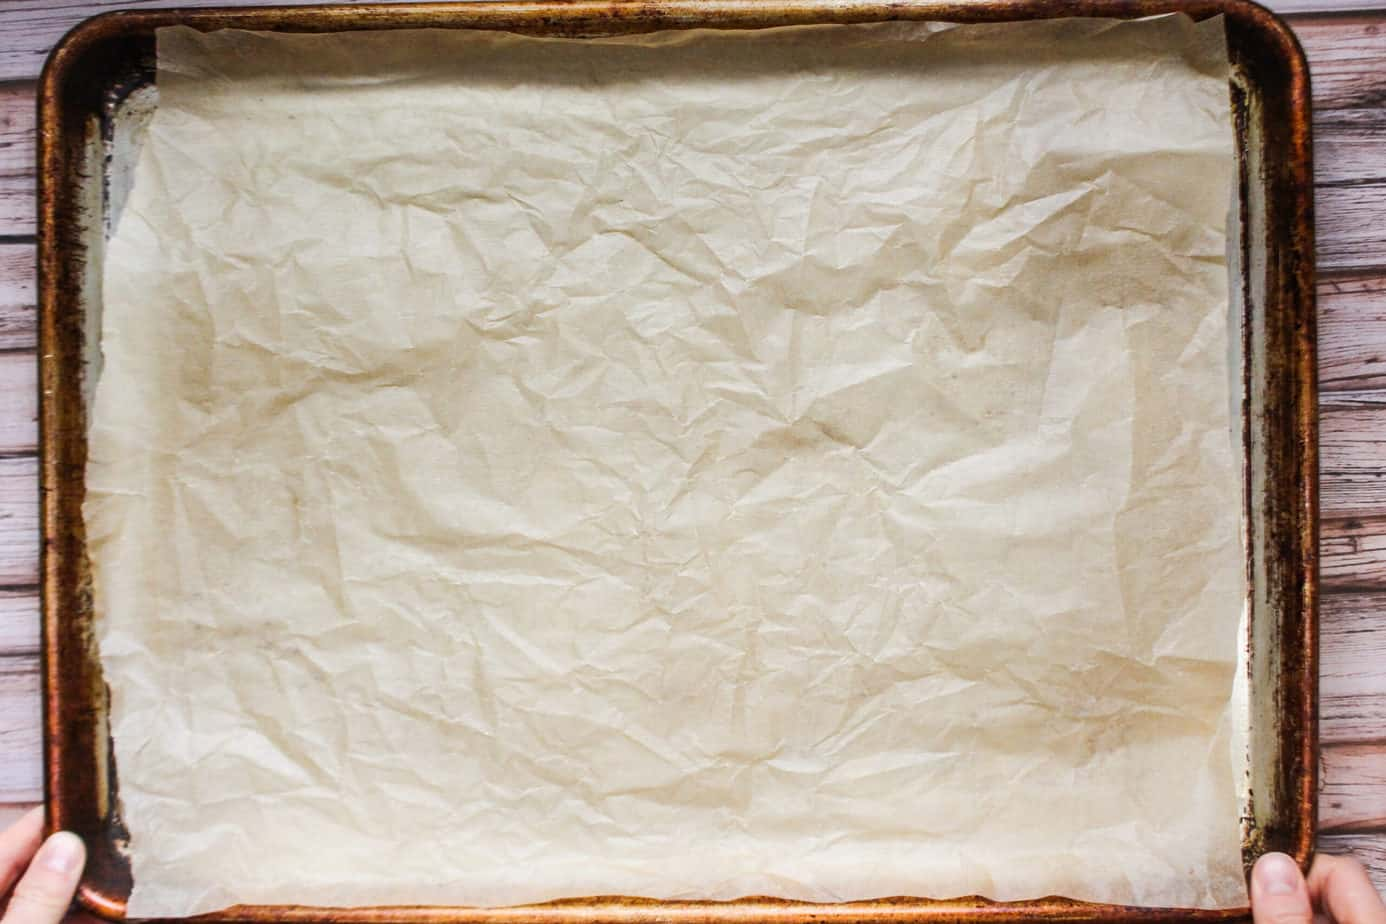 Wrinkled parchment paper on a sheet pan